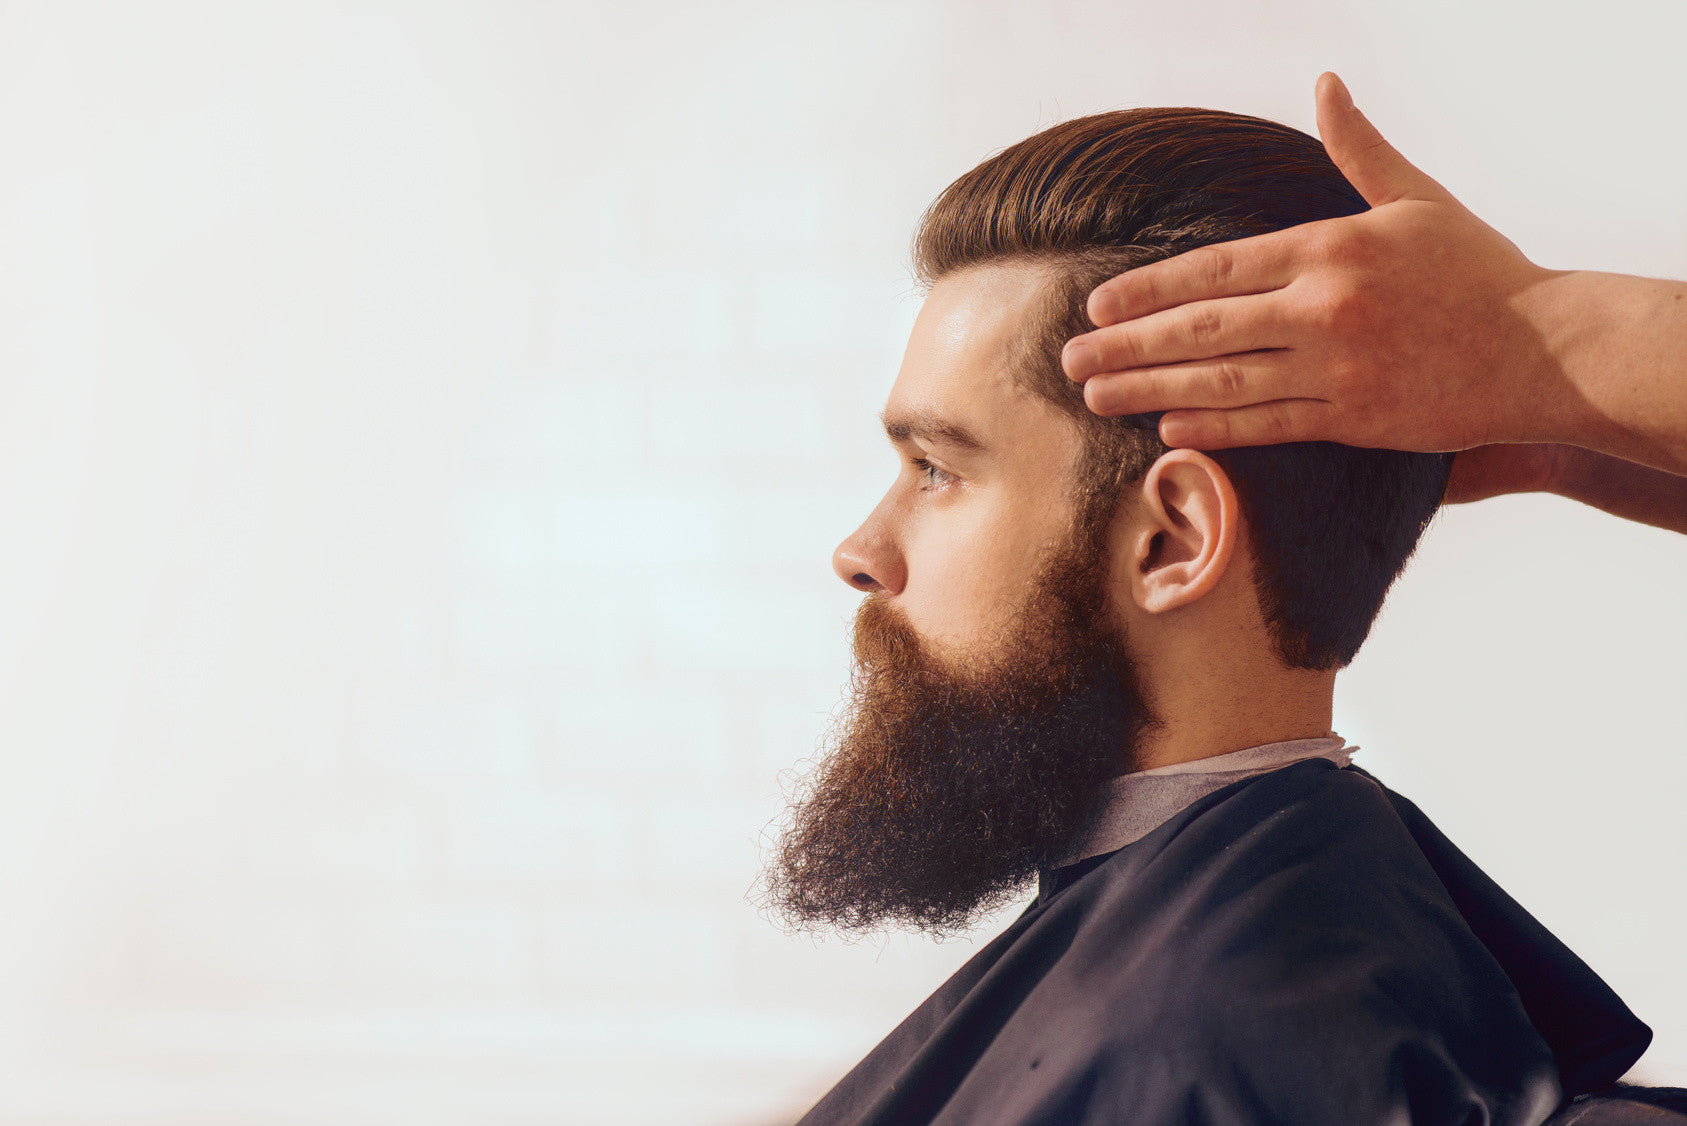 How to choose a beard style that fits your face shape